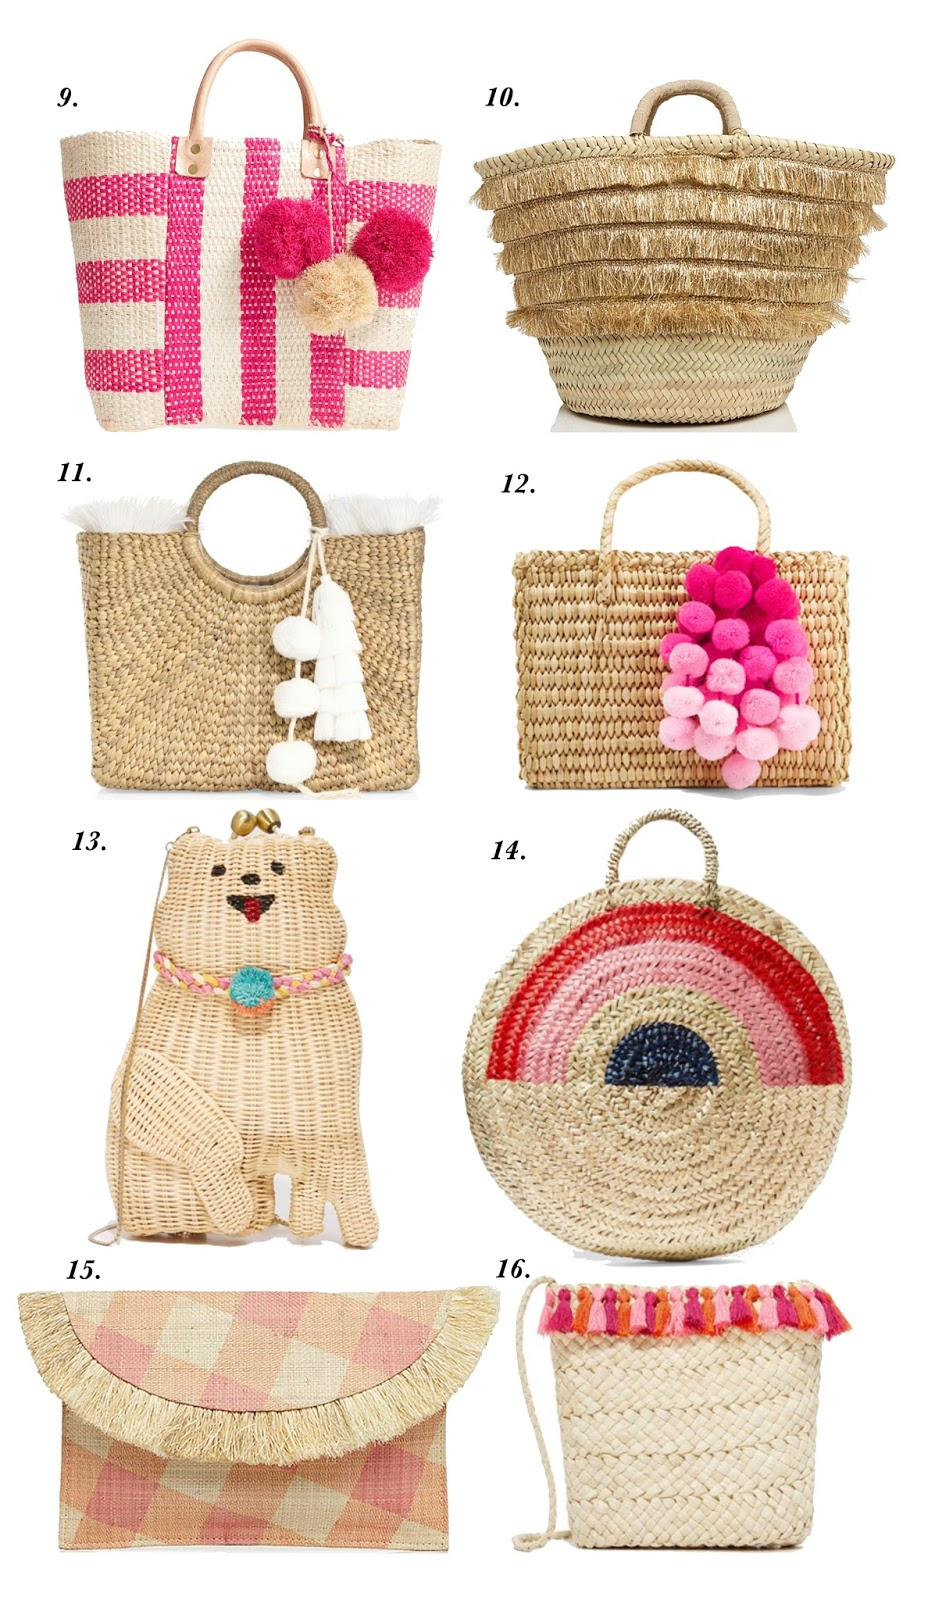 Straw Bags - Click through to see more on Something Delightful Blog!